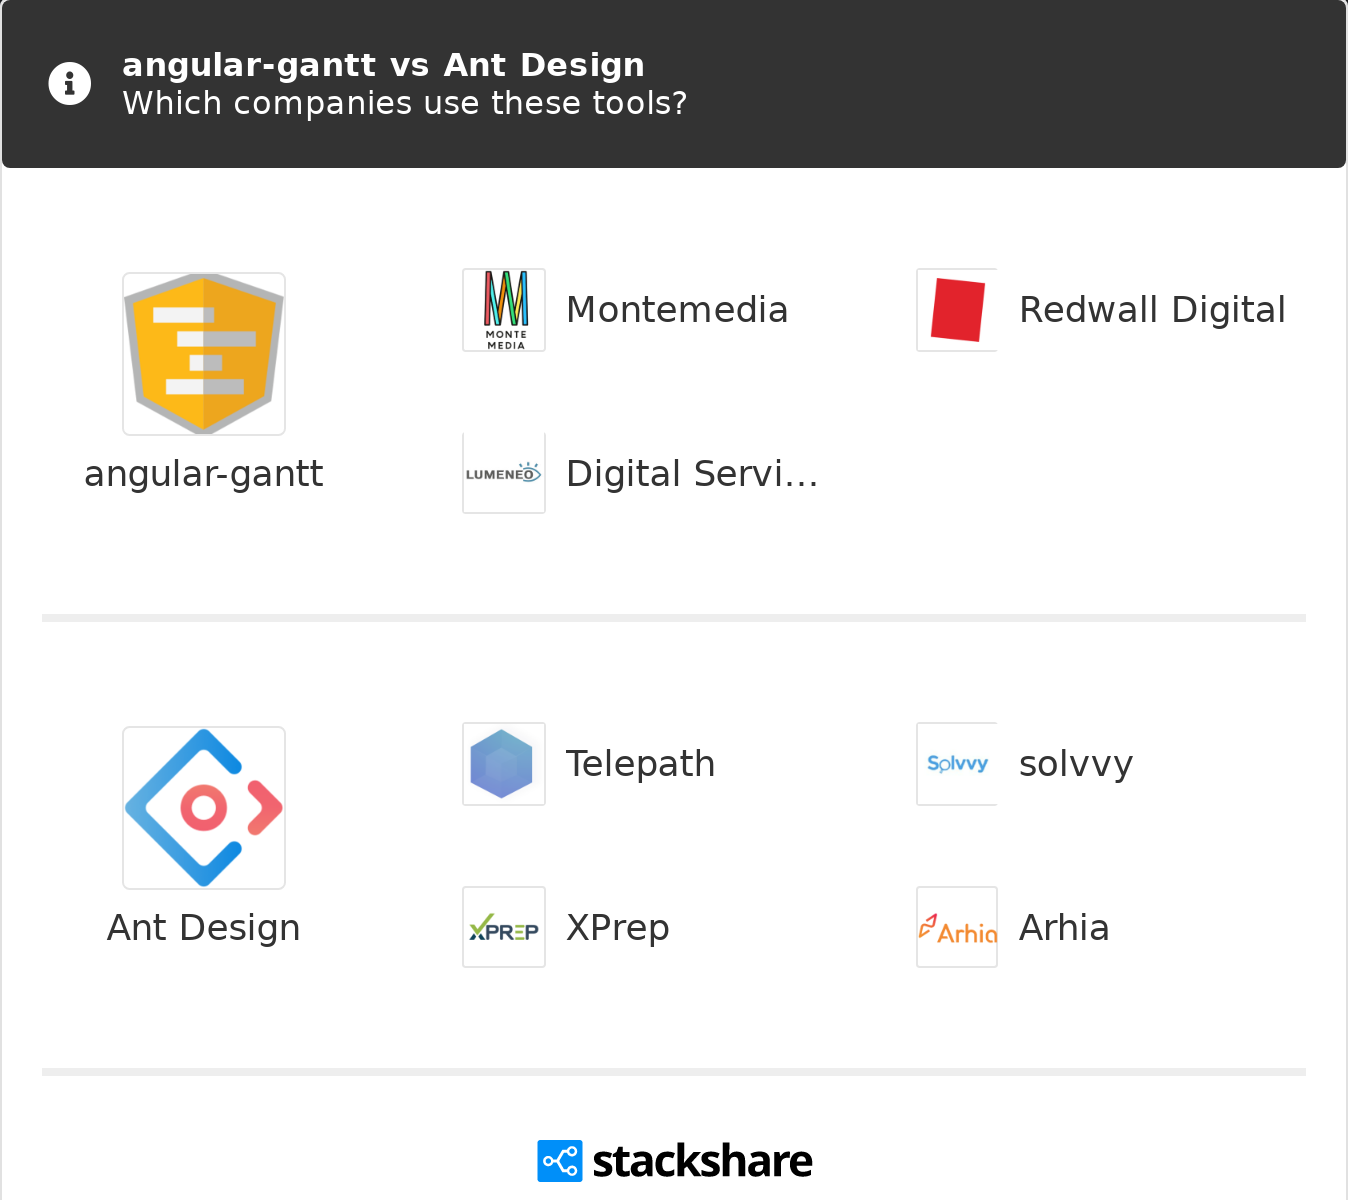 angular-gantt vs Ant Design | What are the differences?